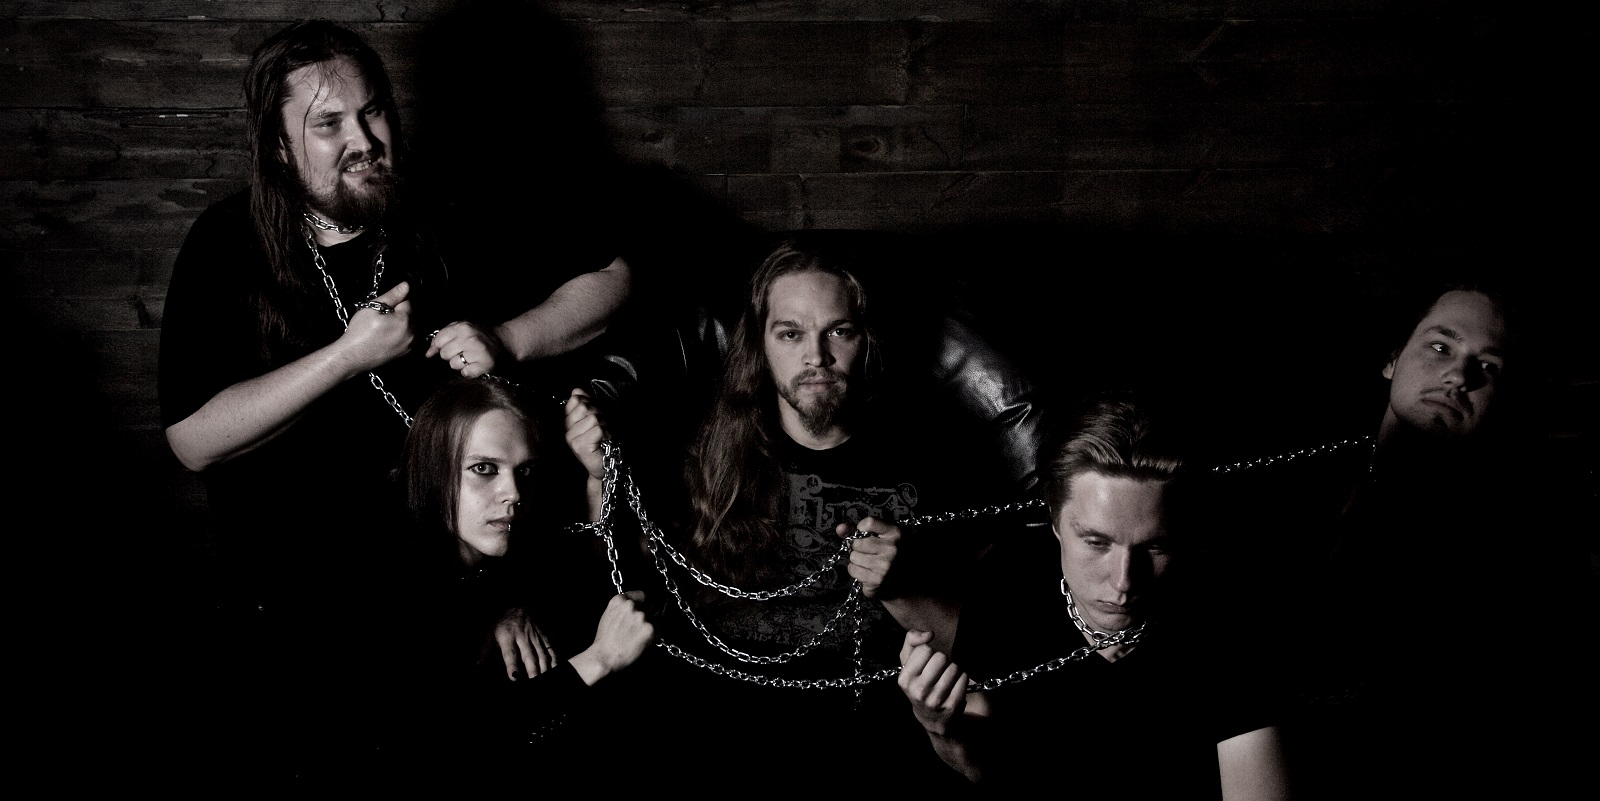 Scars Of Solitude released a new single from their upcoming debut album!